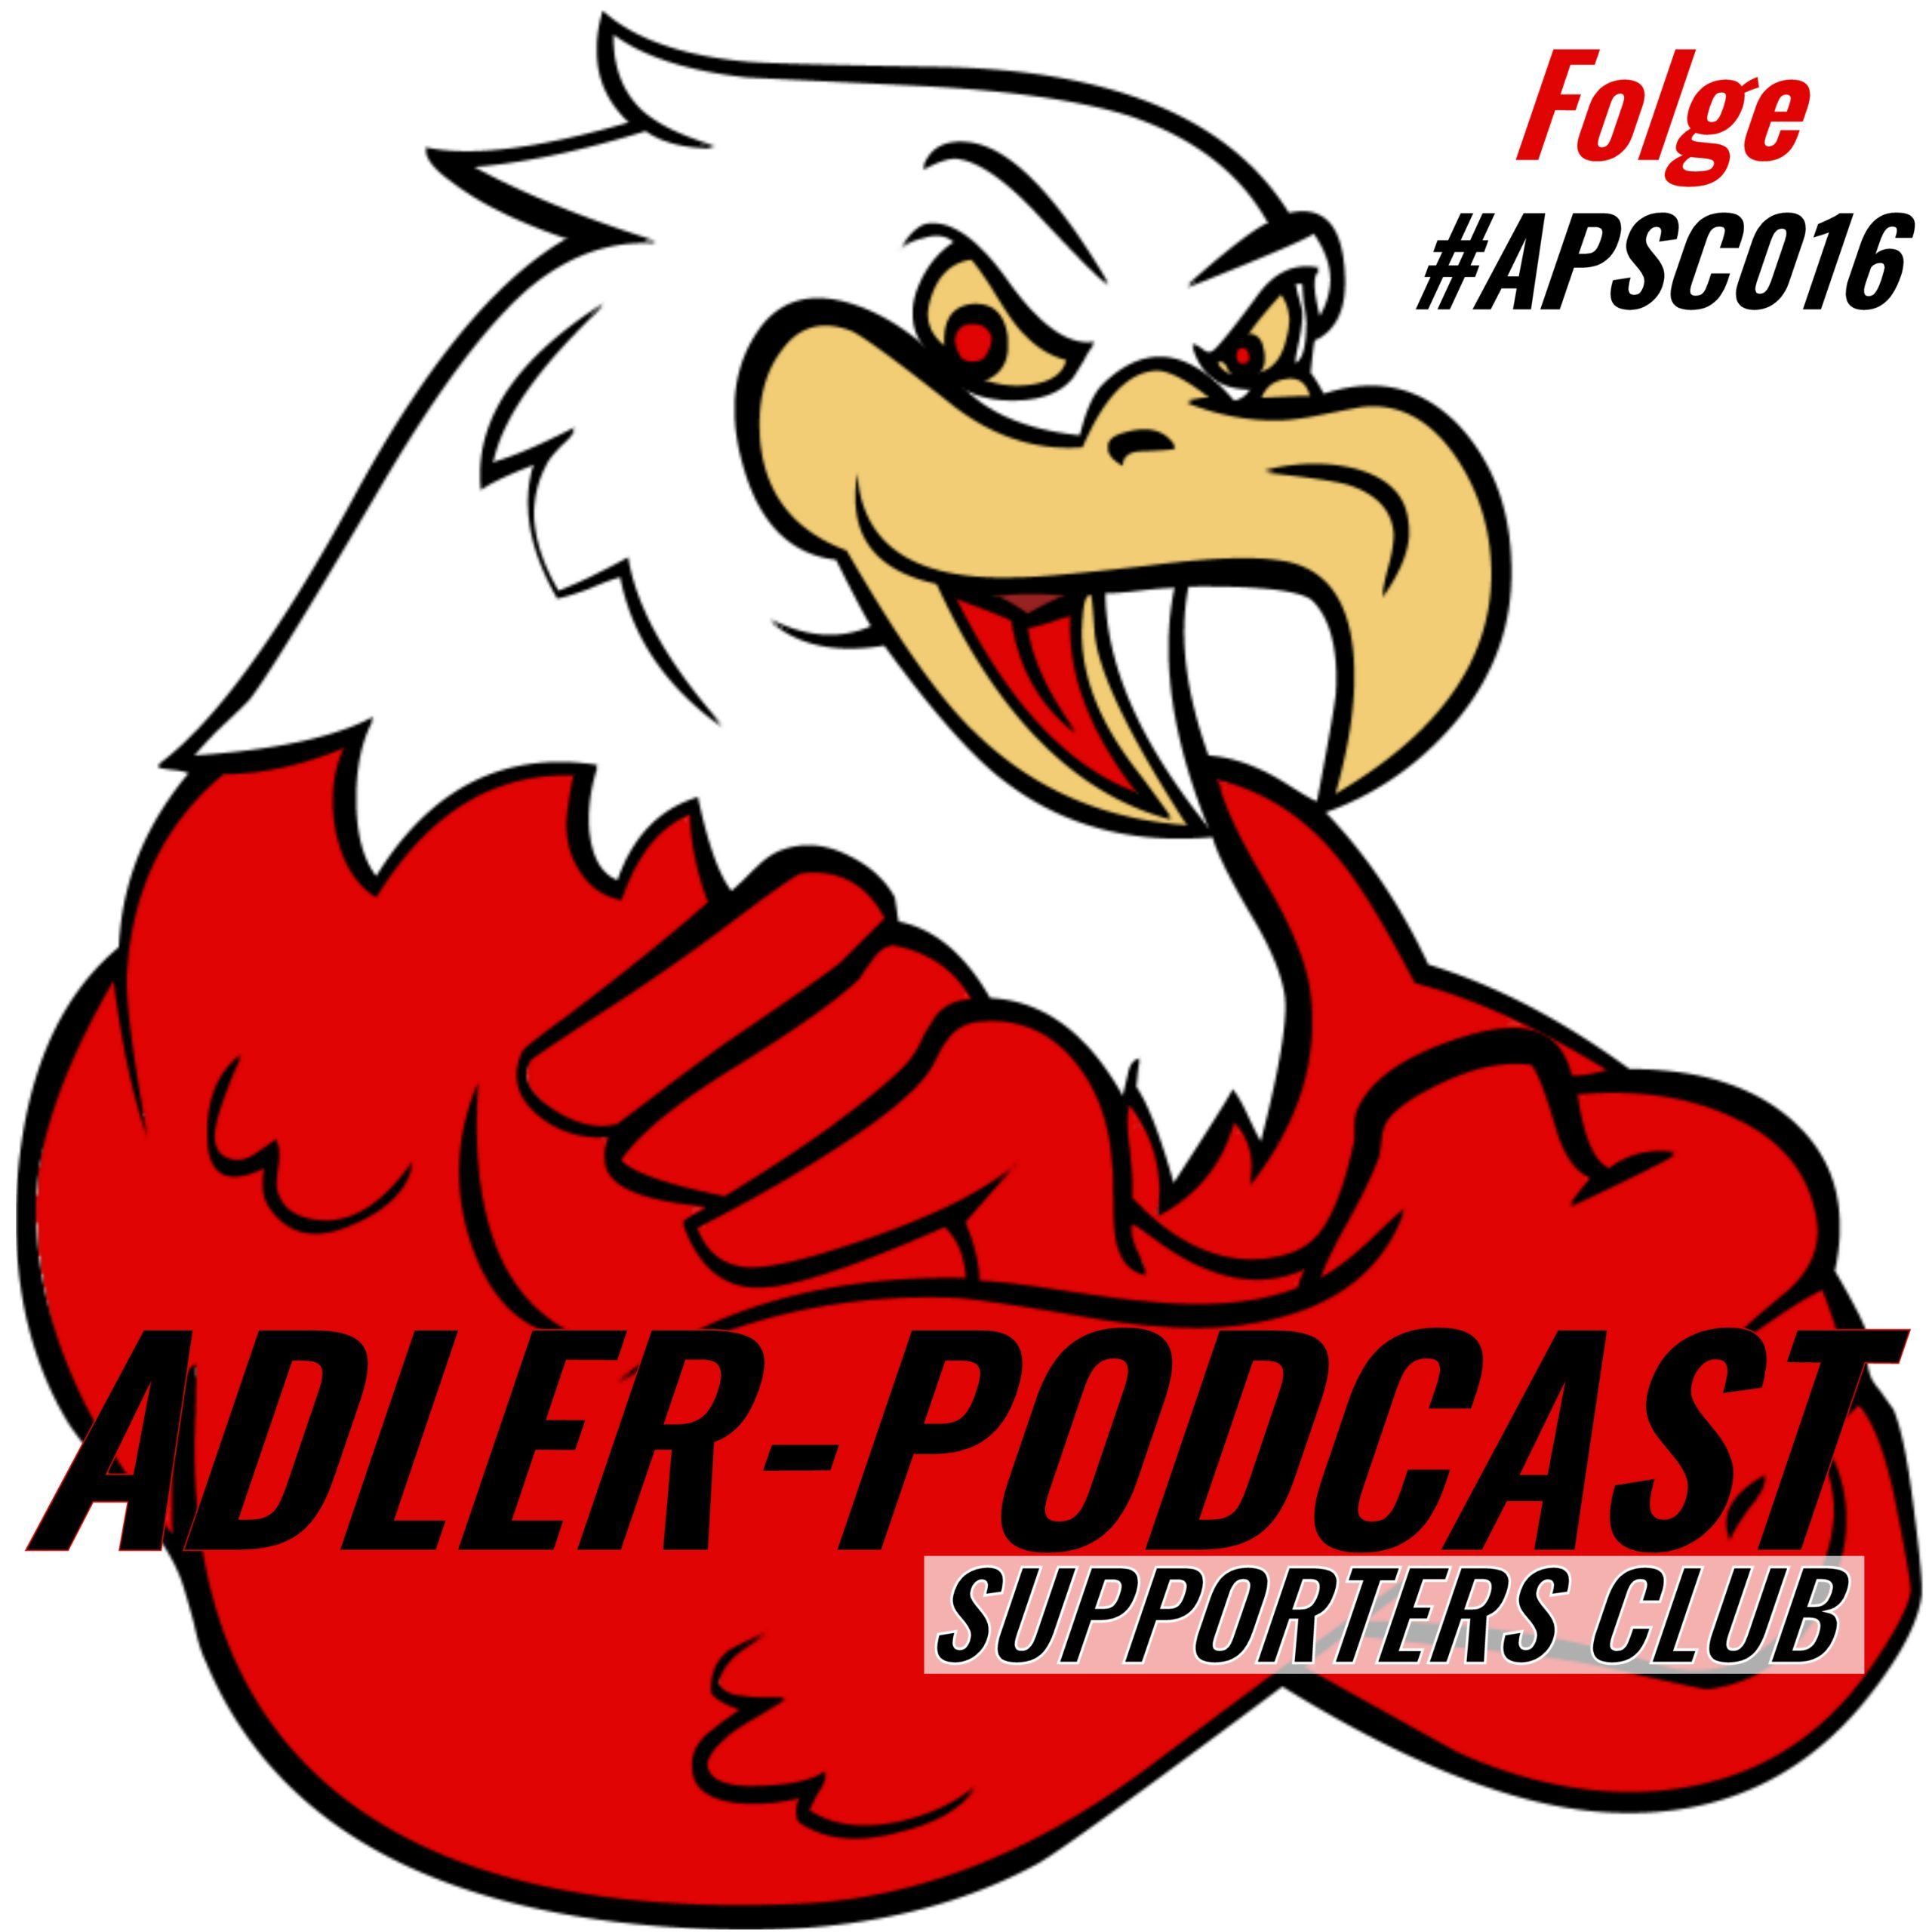 Adler-Podcast Special: Patreon-Folge #APSC016 (Free4All)